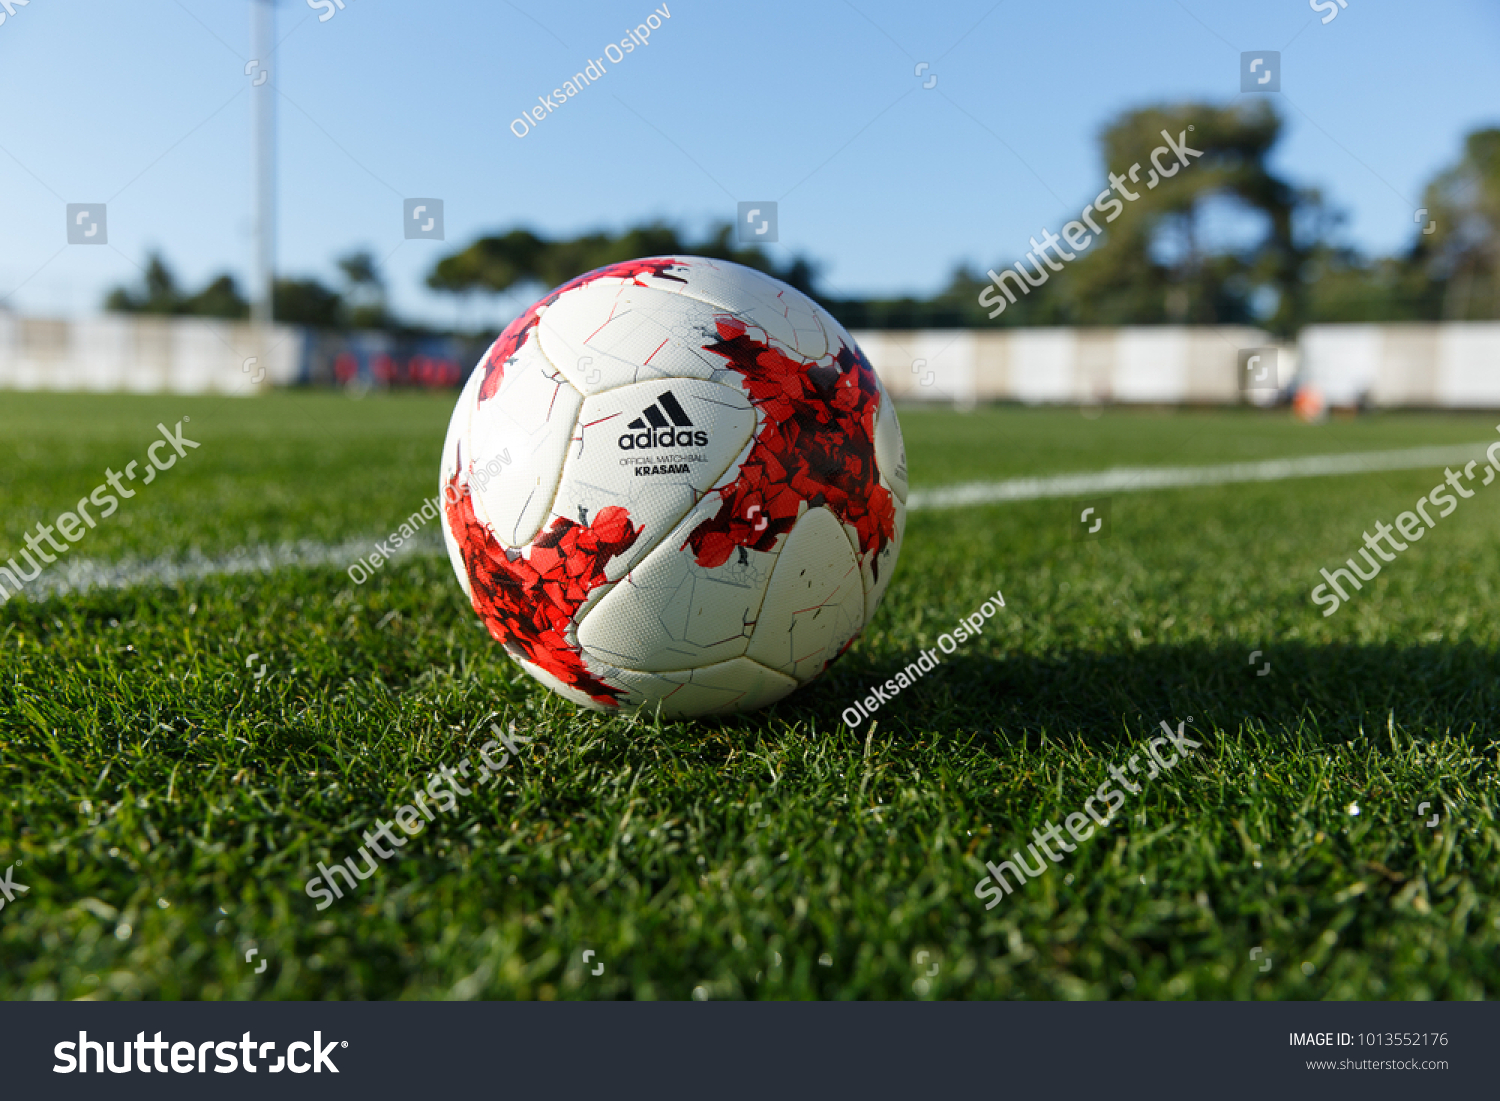 Simple Europe World Cup 2018 - stock-photo-barcelona-europe-january-the-official-ball-of-the-fifa-world-cup-adidas-krasava-on-1013552176  Perfect Image Reference_548349 .jpg